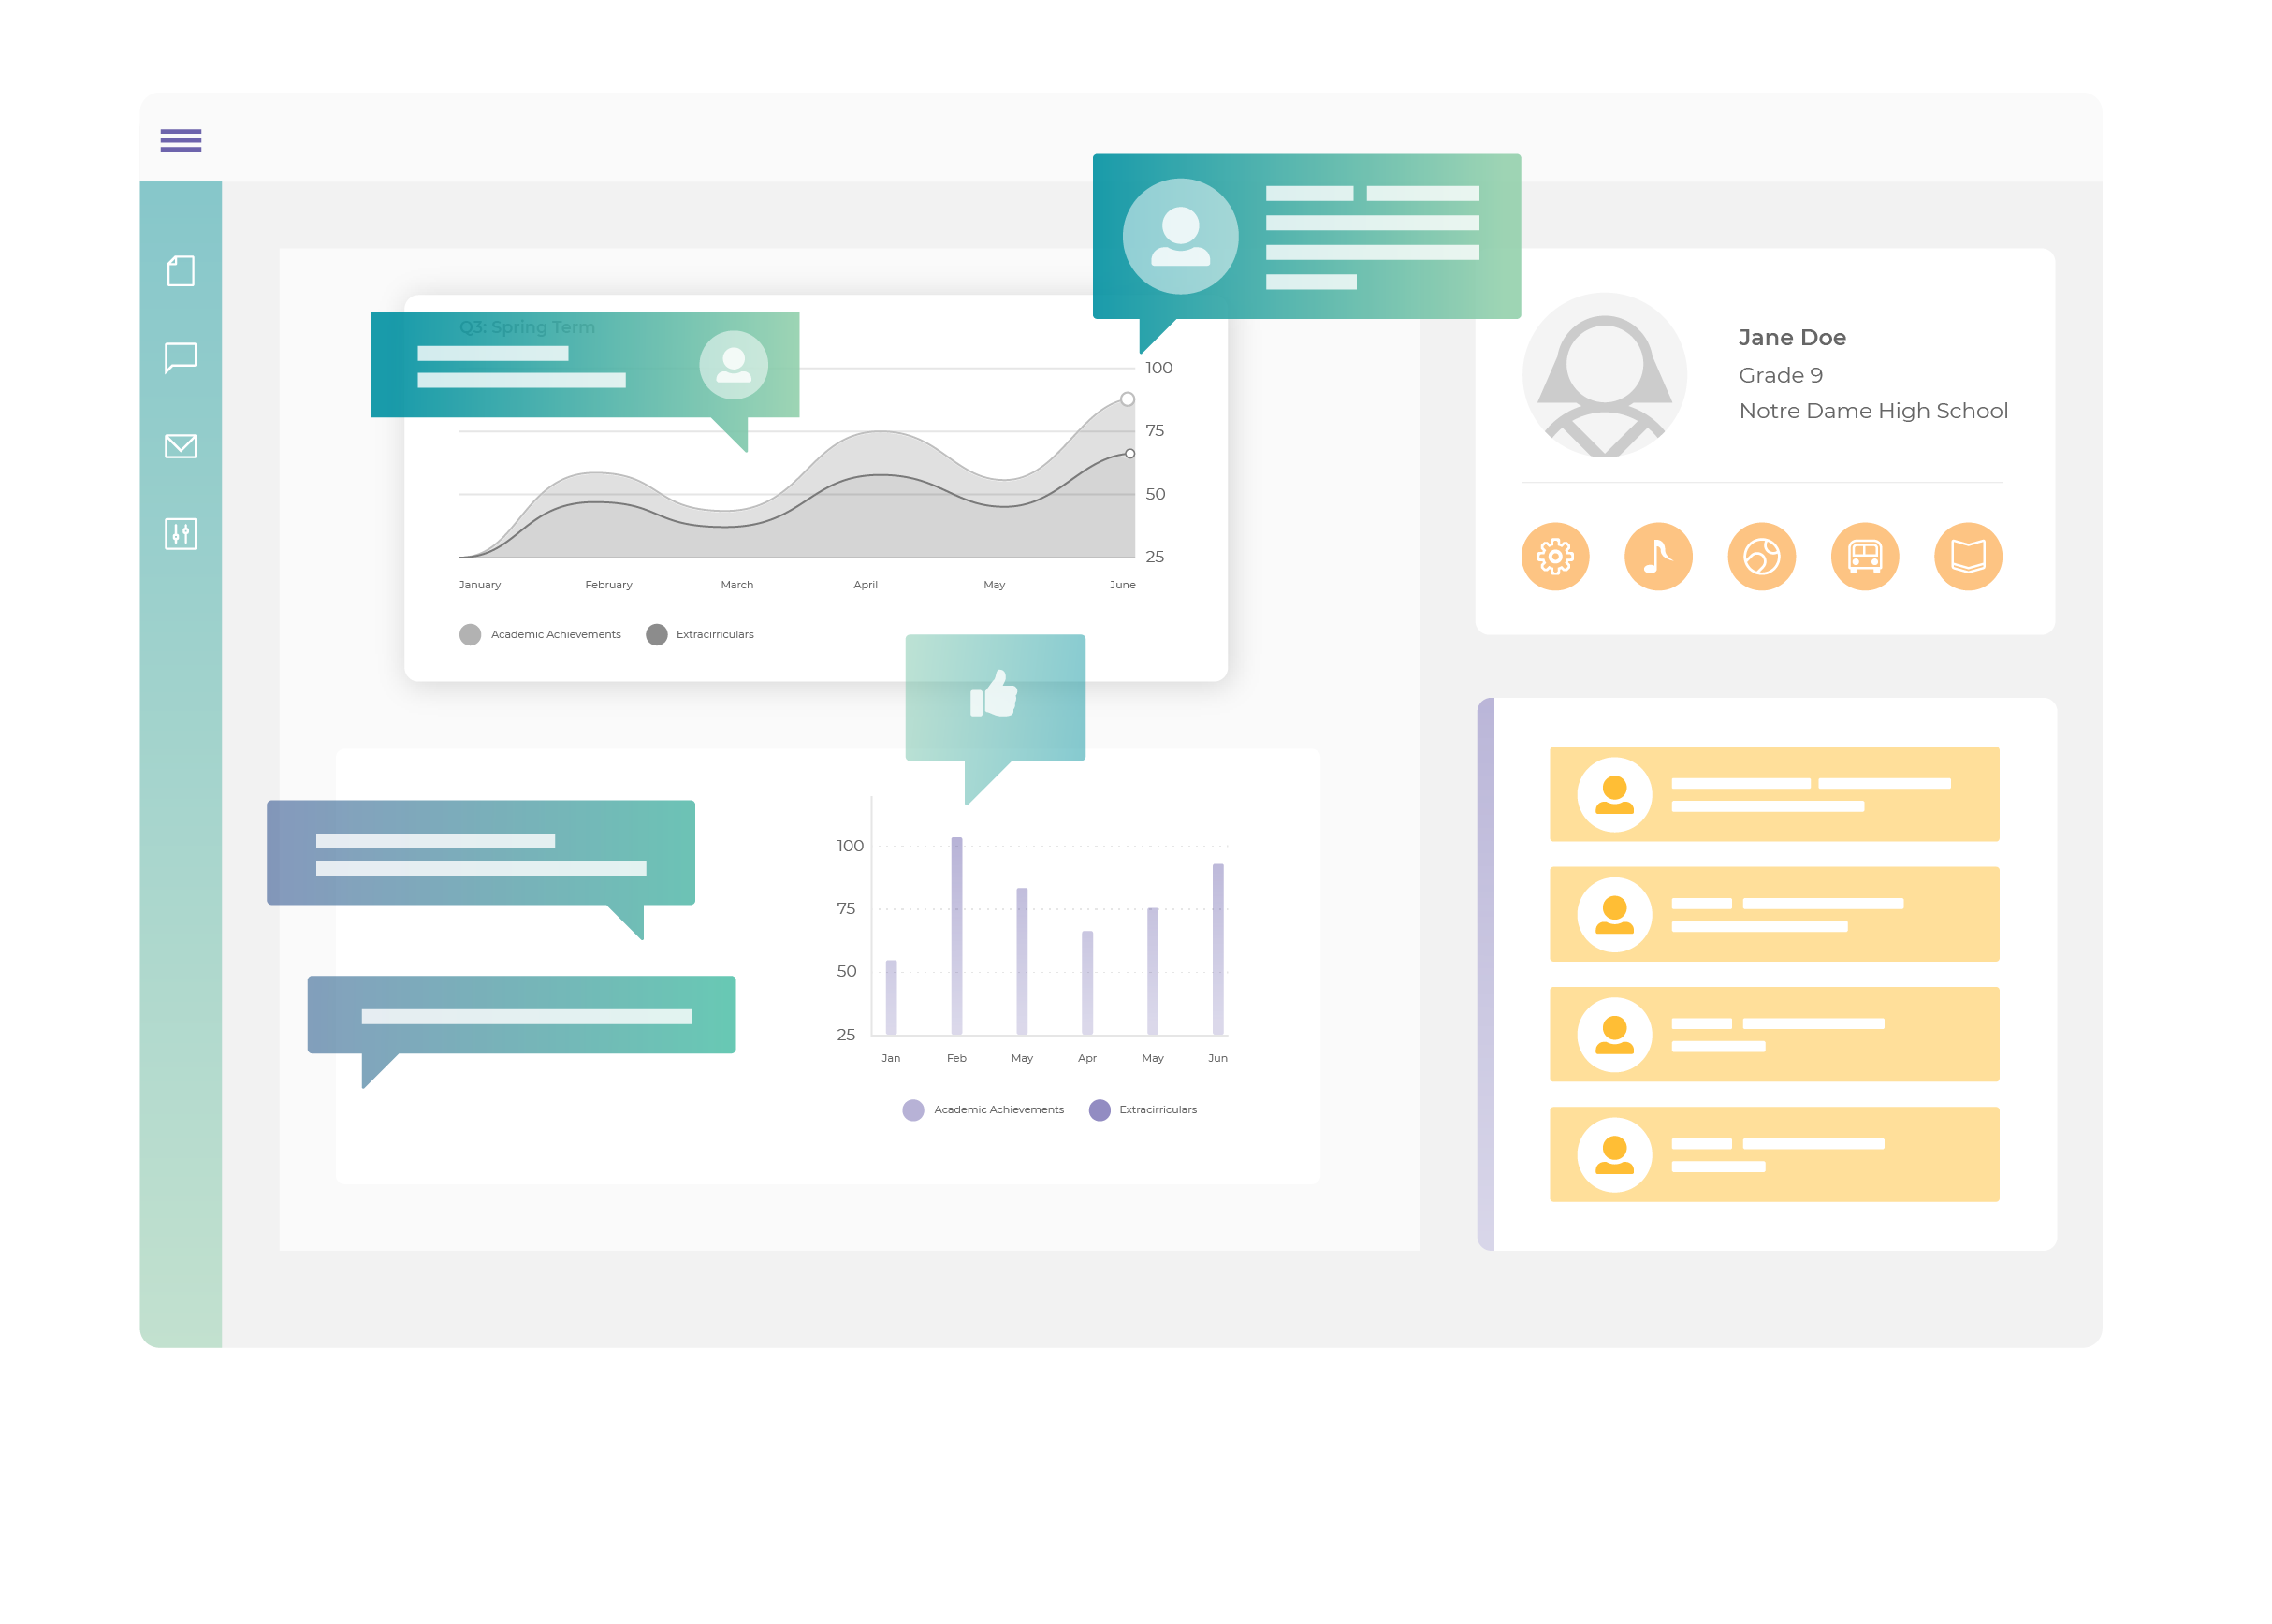 Stylized view of the LookThink CognoSIS dashboard